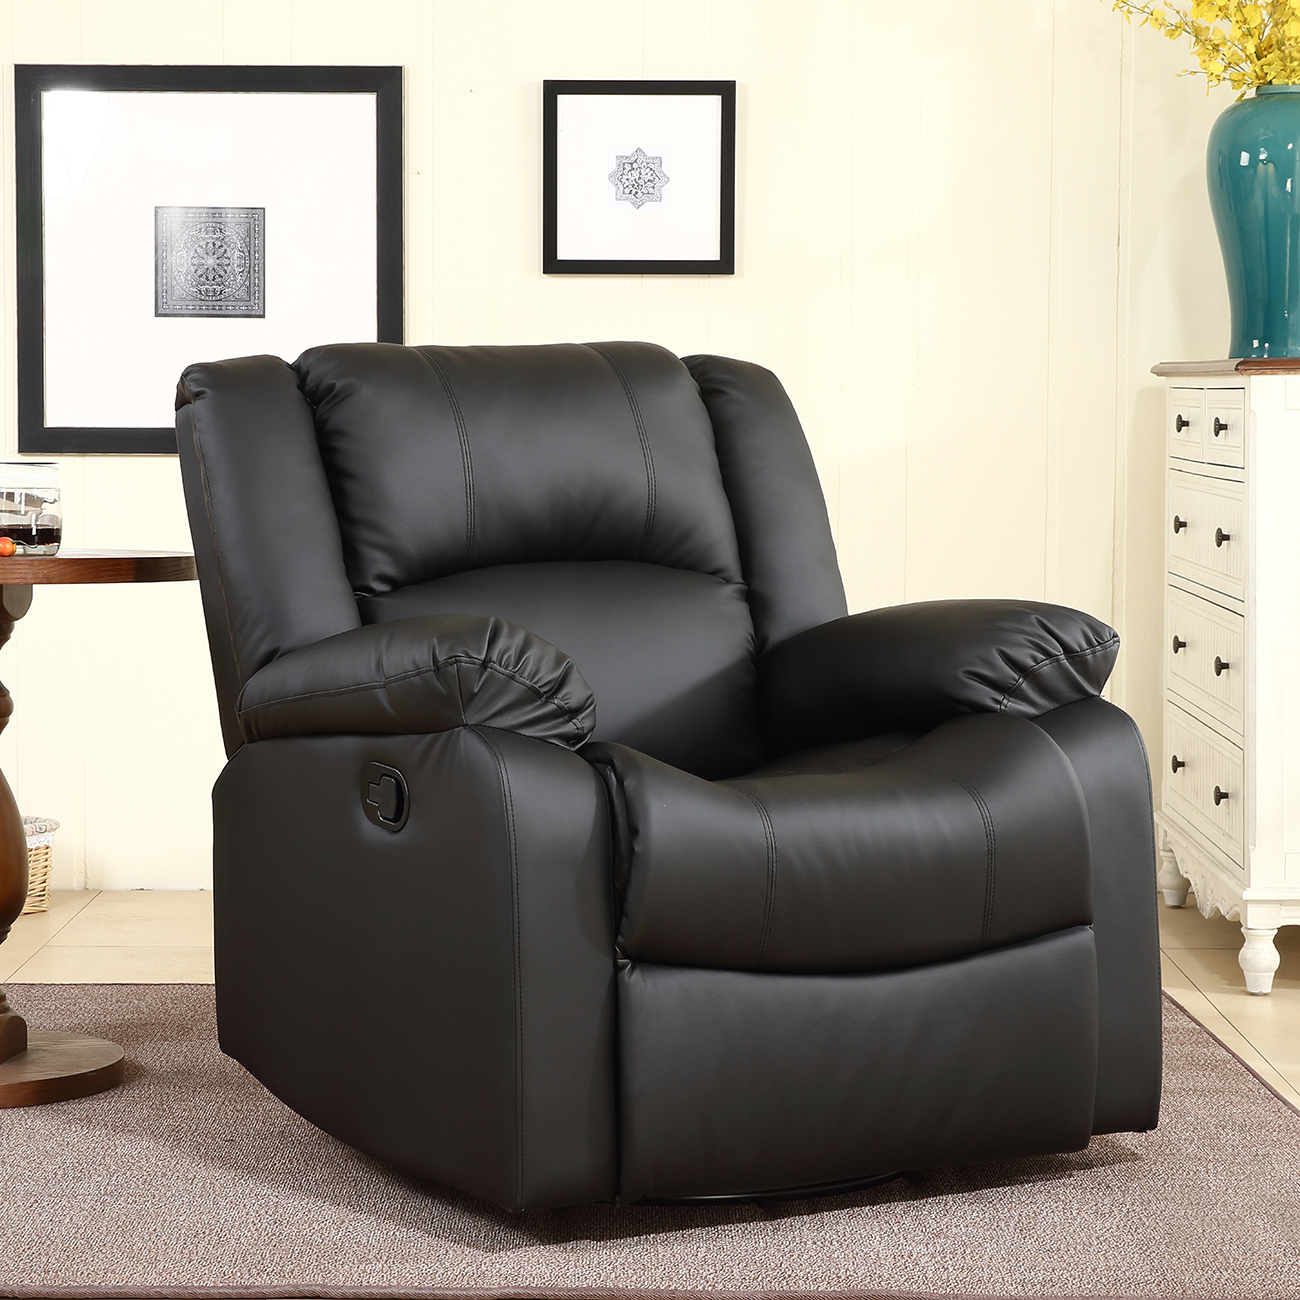 Black Swivel Chair New Recliner And Rocking Swivel Chair Leather Seat Living